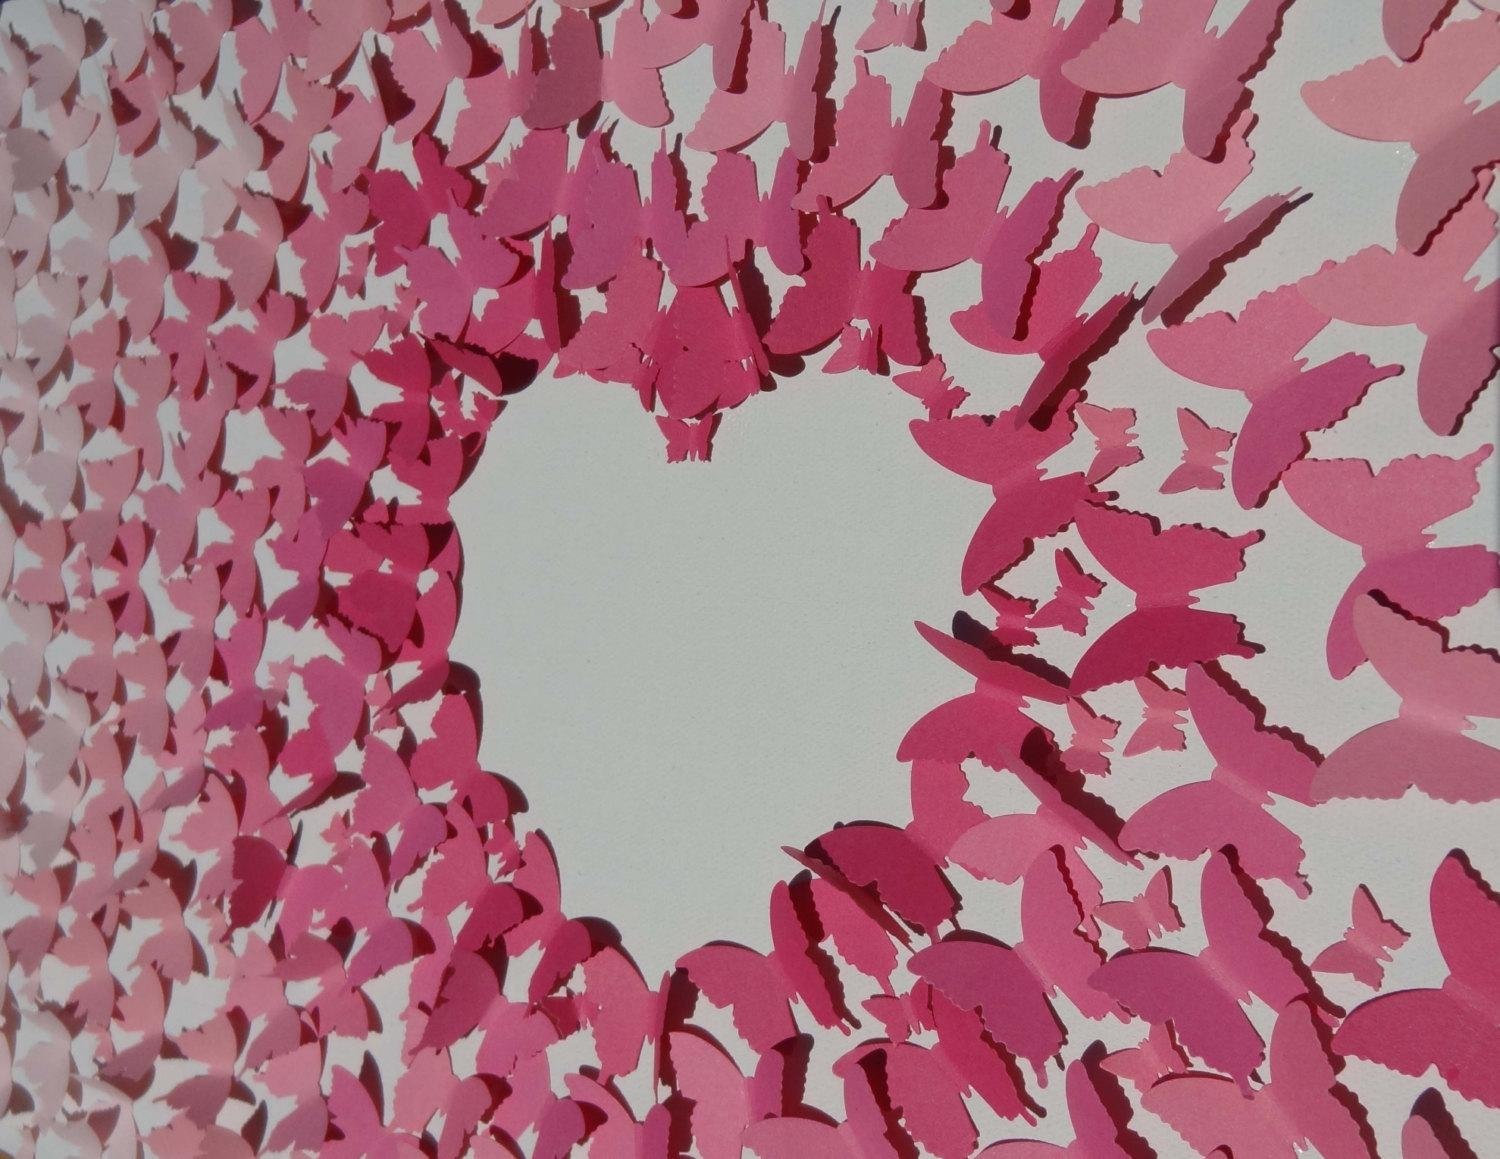 Butterfly Wall Art Pink Ombre' 3D Heart Negative Space Intended For Pink Butterfly Wall Art (Photo 20 of 20)